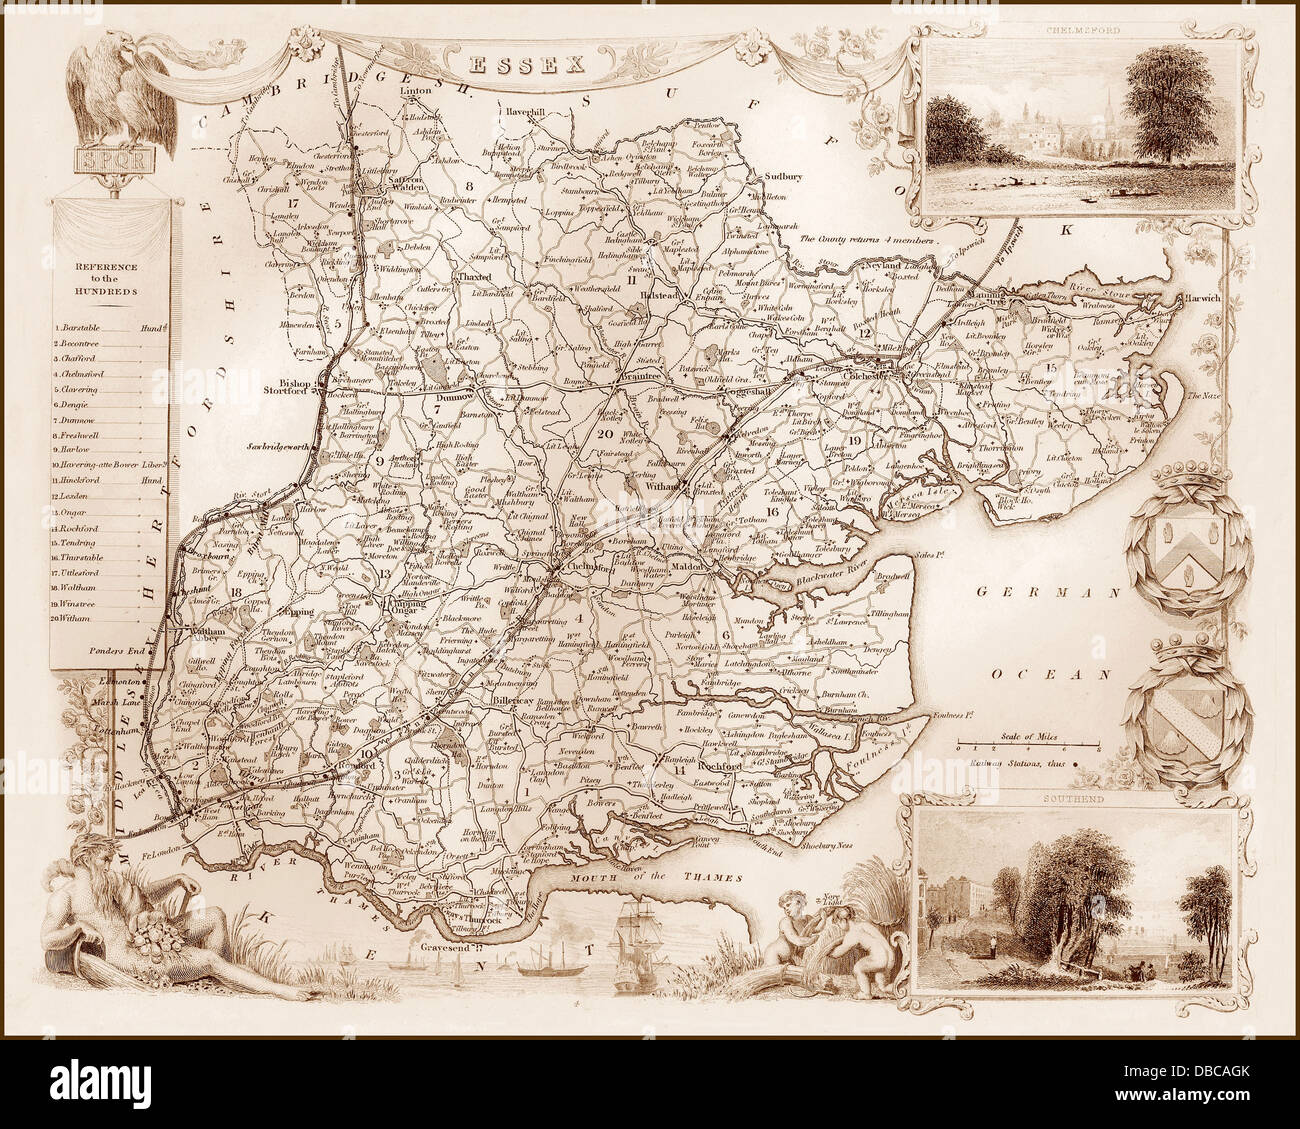 1840s Victorian Map of Essex - Stock Image